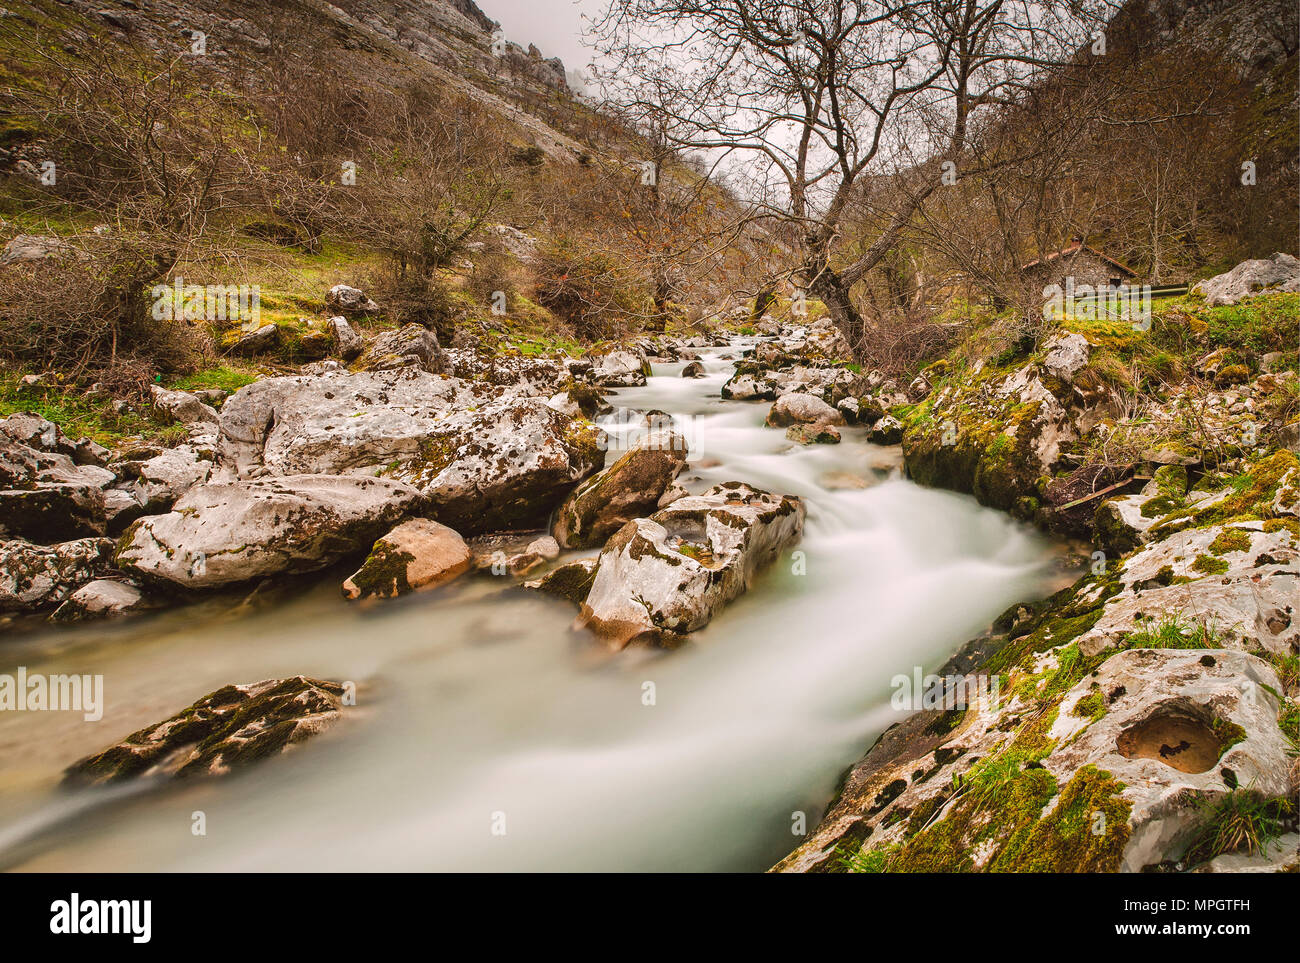 Cares river in Asturias, Spain. A beautiful spanish landscape. - Stock Image